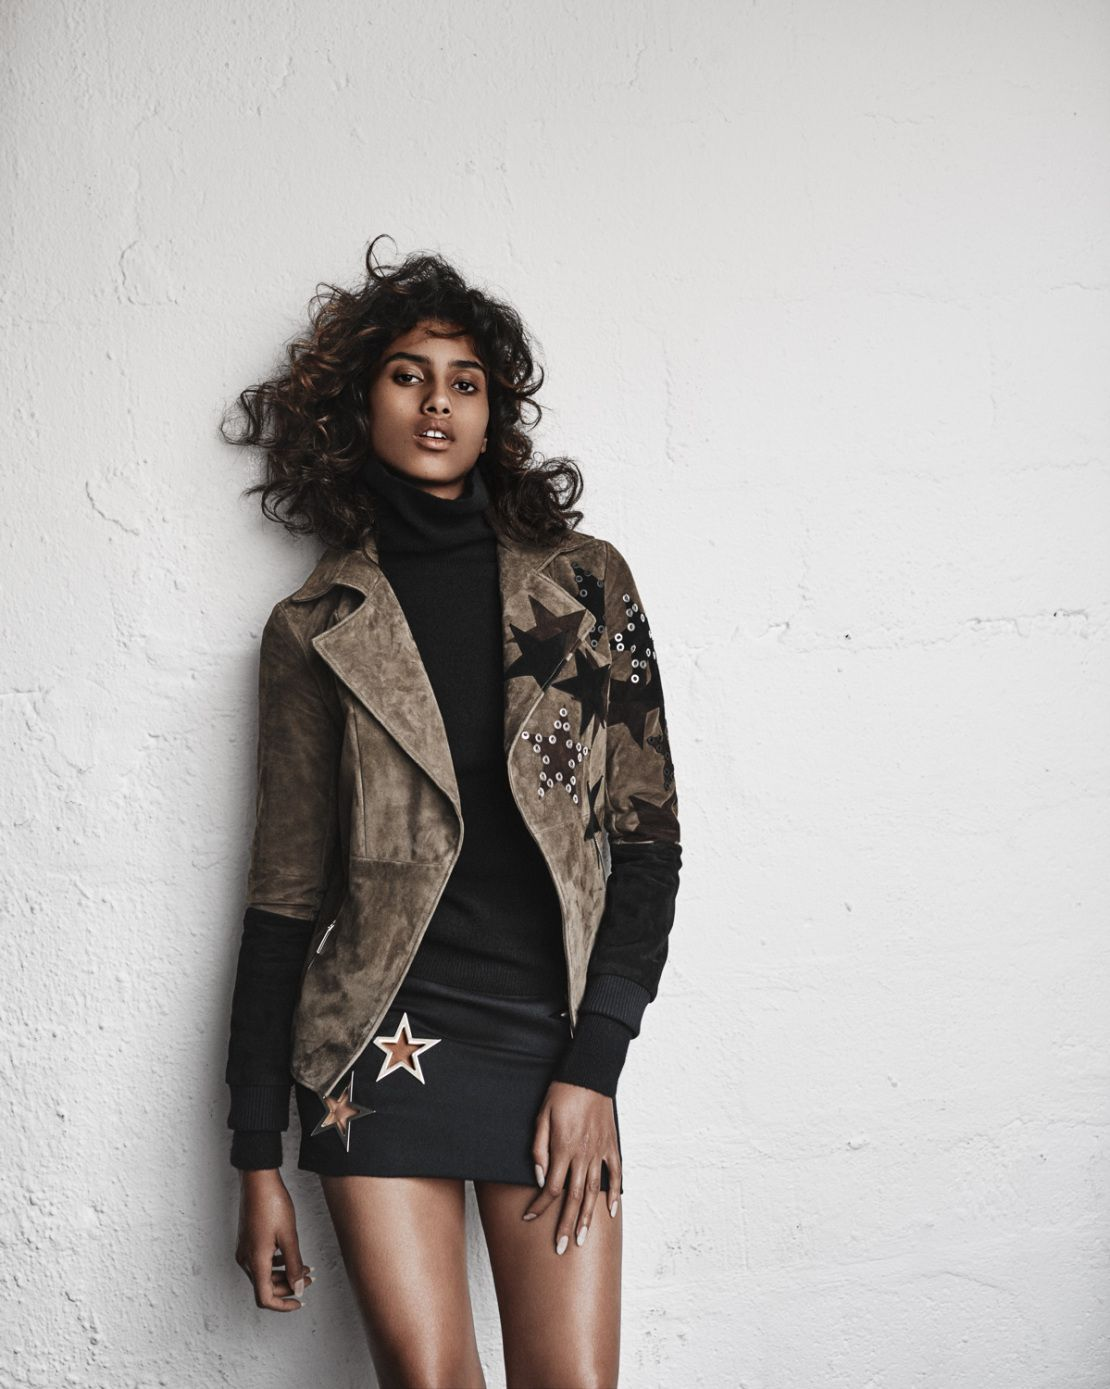 Imaan Hammam by Marc de Groot for Vogue Netherlands September 2015